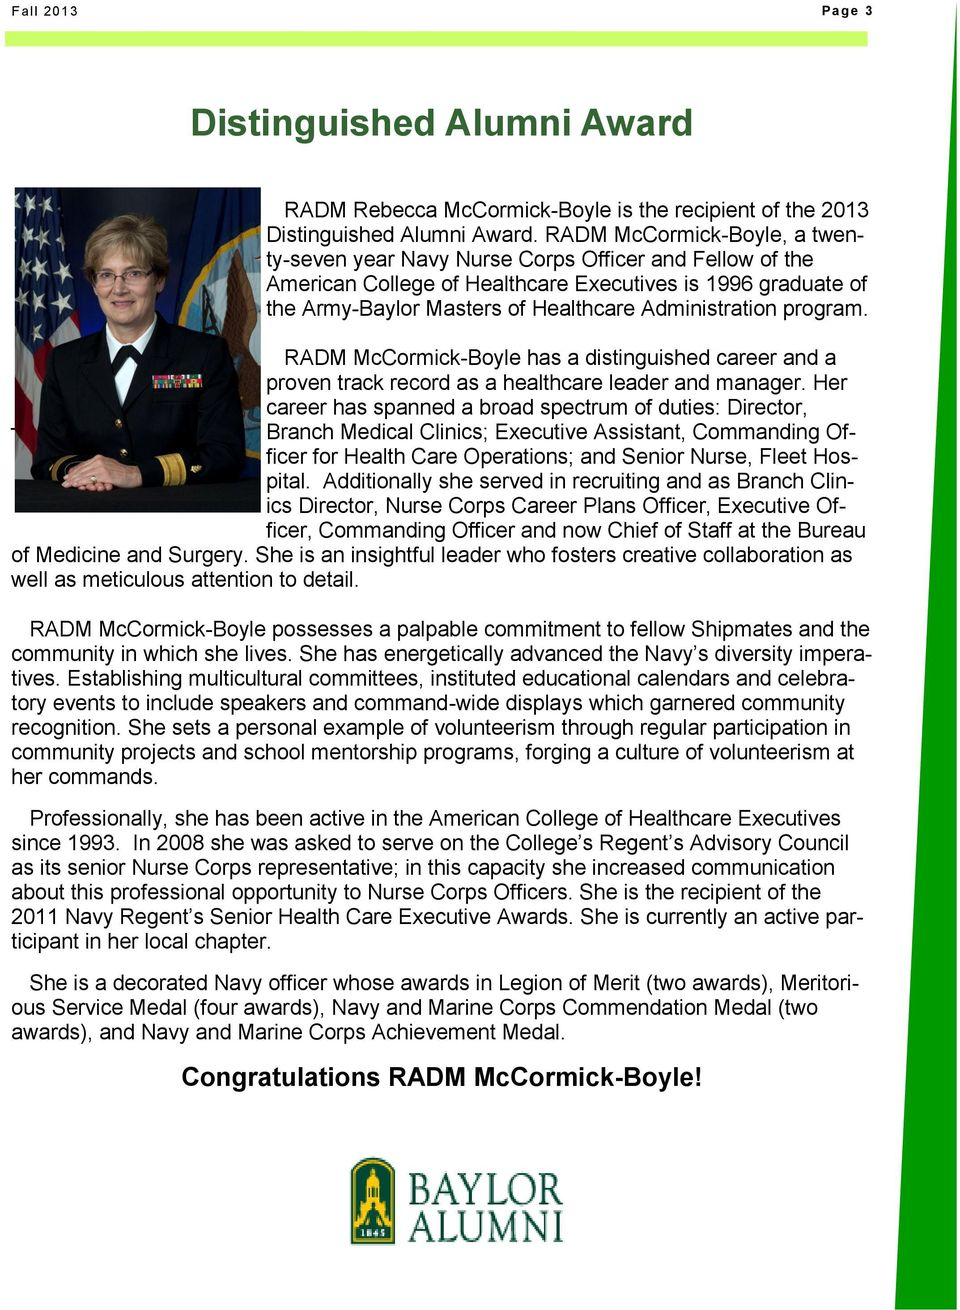 program. RADM McCormick-Boyle has a distinguished career and a proven track record as a healthcare leader and manager.